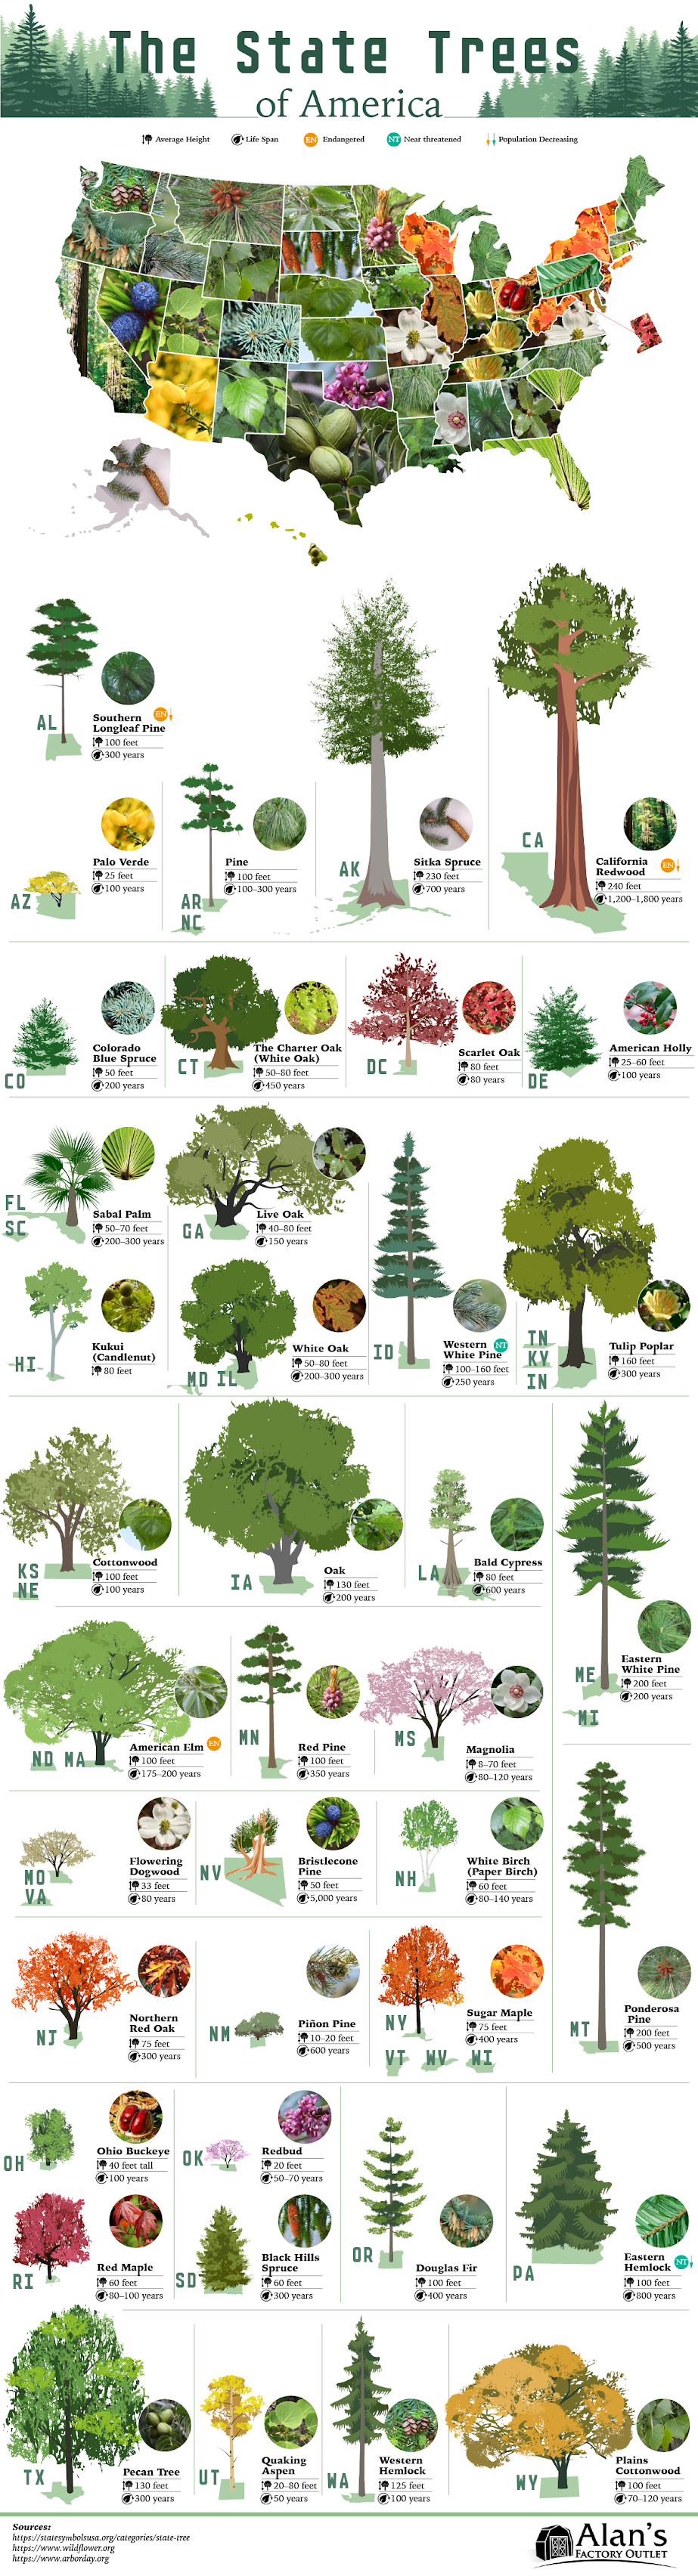 The State Trees of America #infographic #Plants #infographics #Trees of America #State Trees #Trees